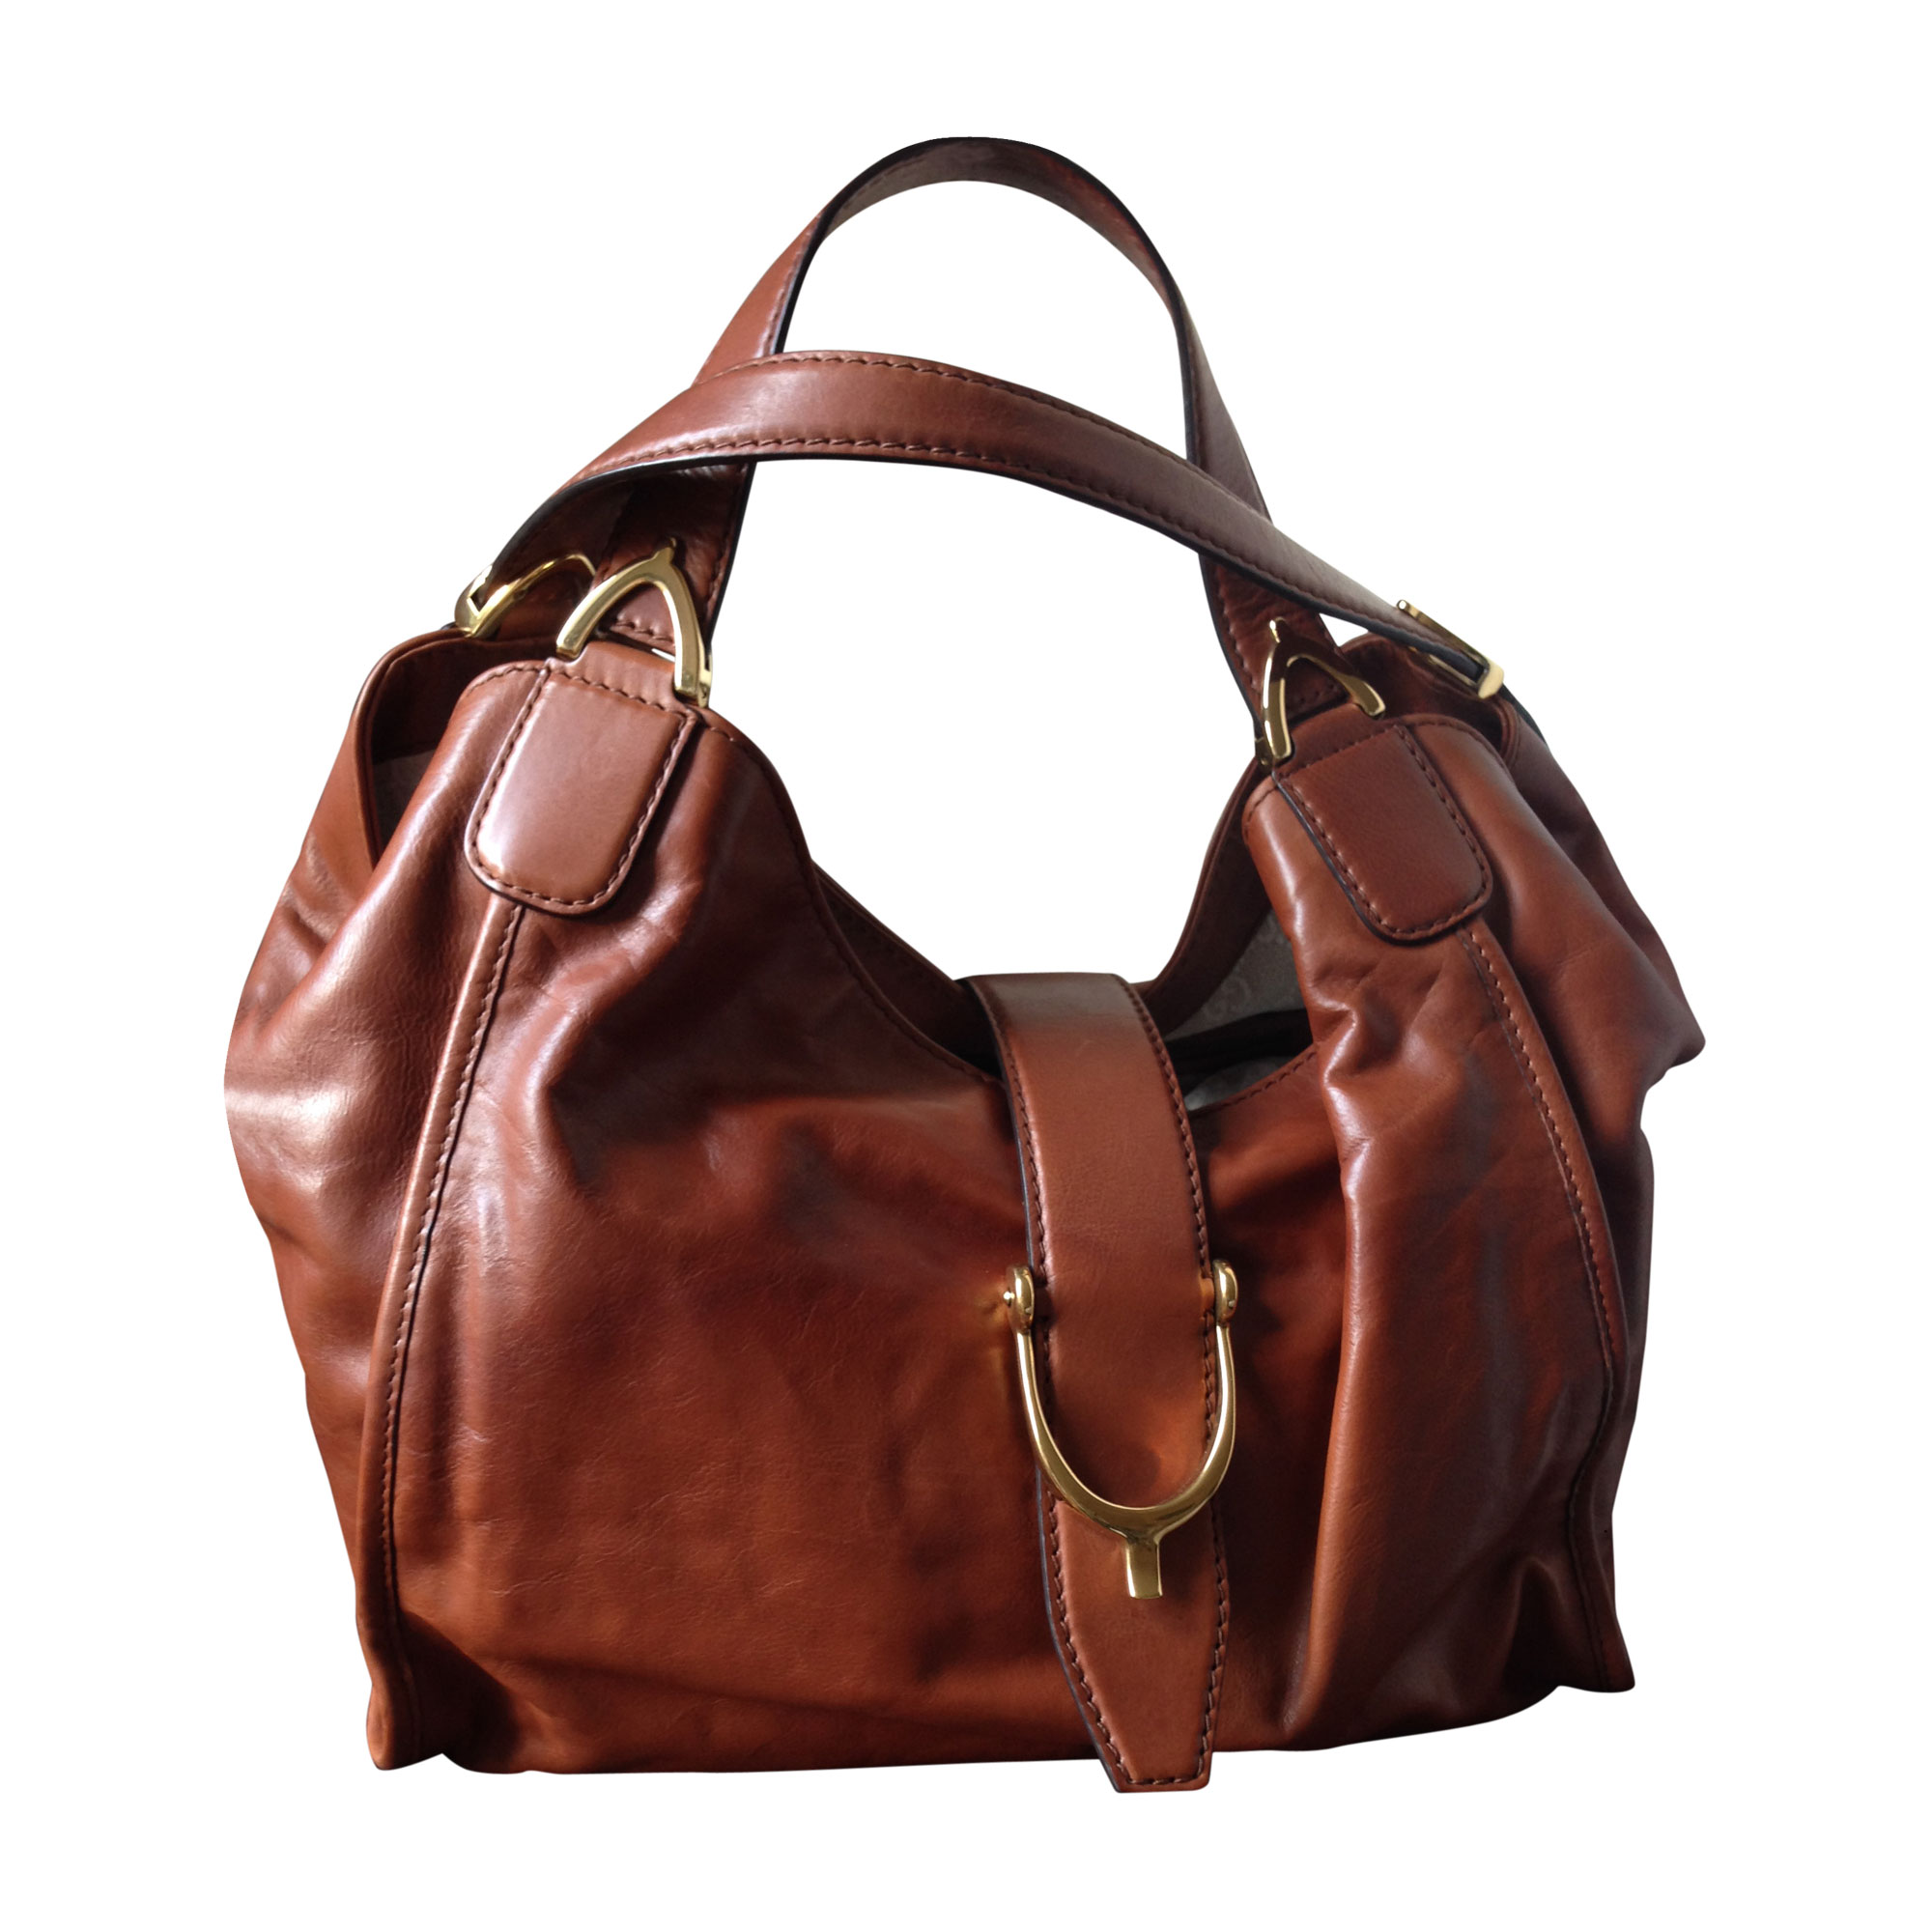 2827120cca Sac à main en cuir GUCCI marron - 4867220